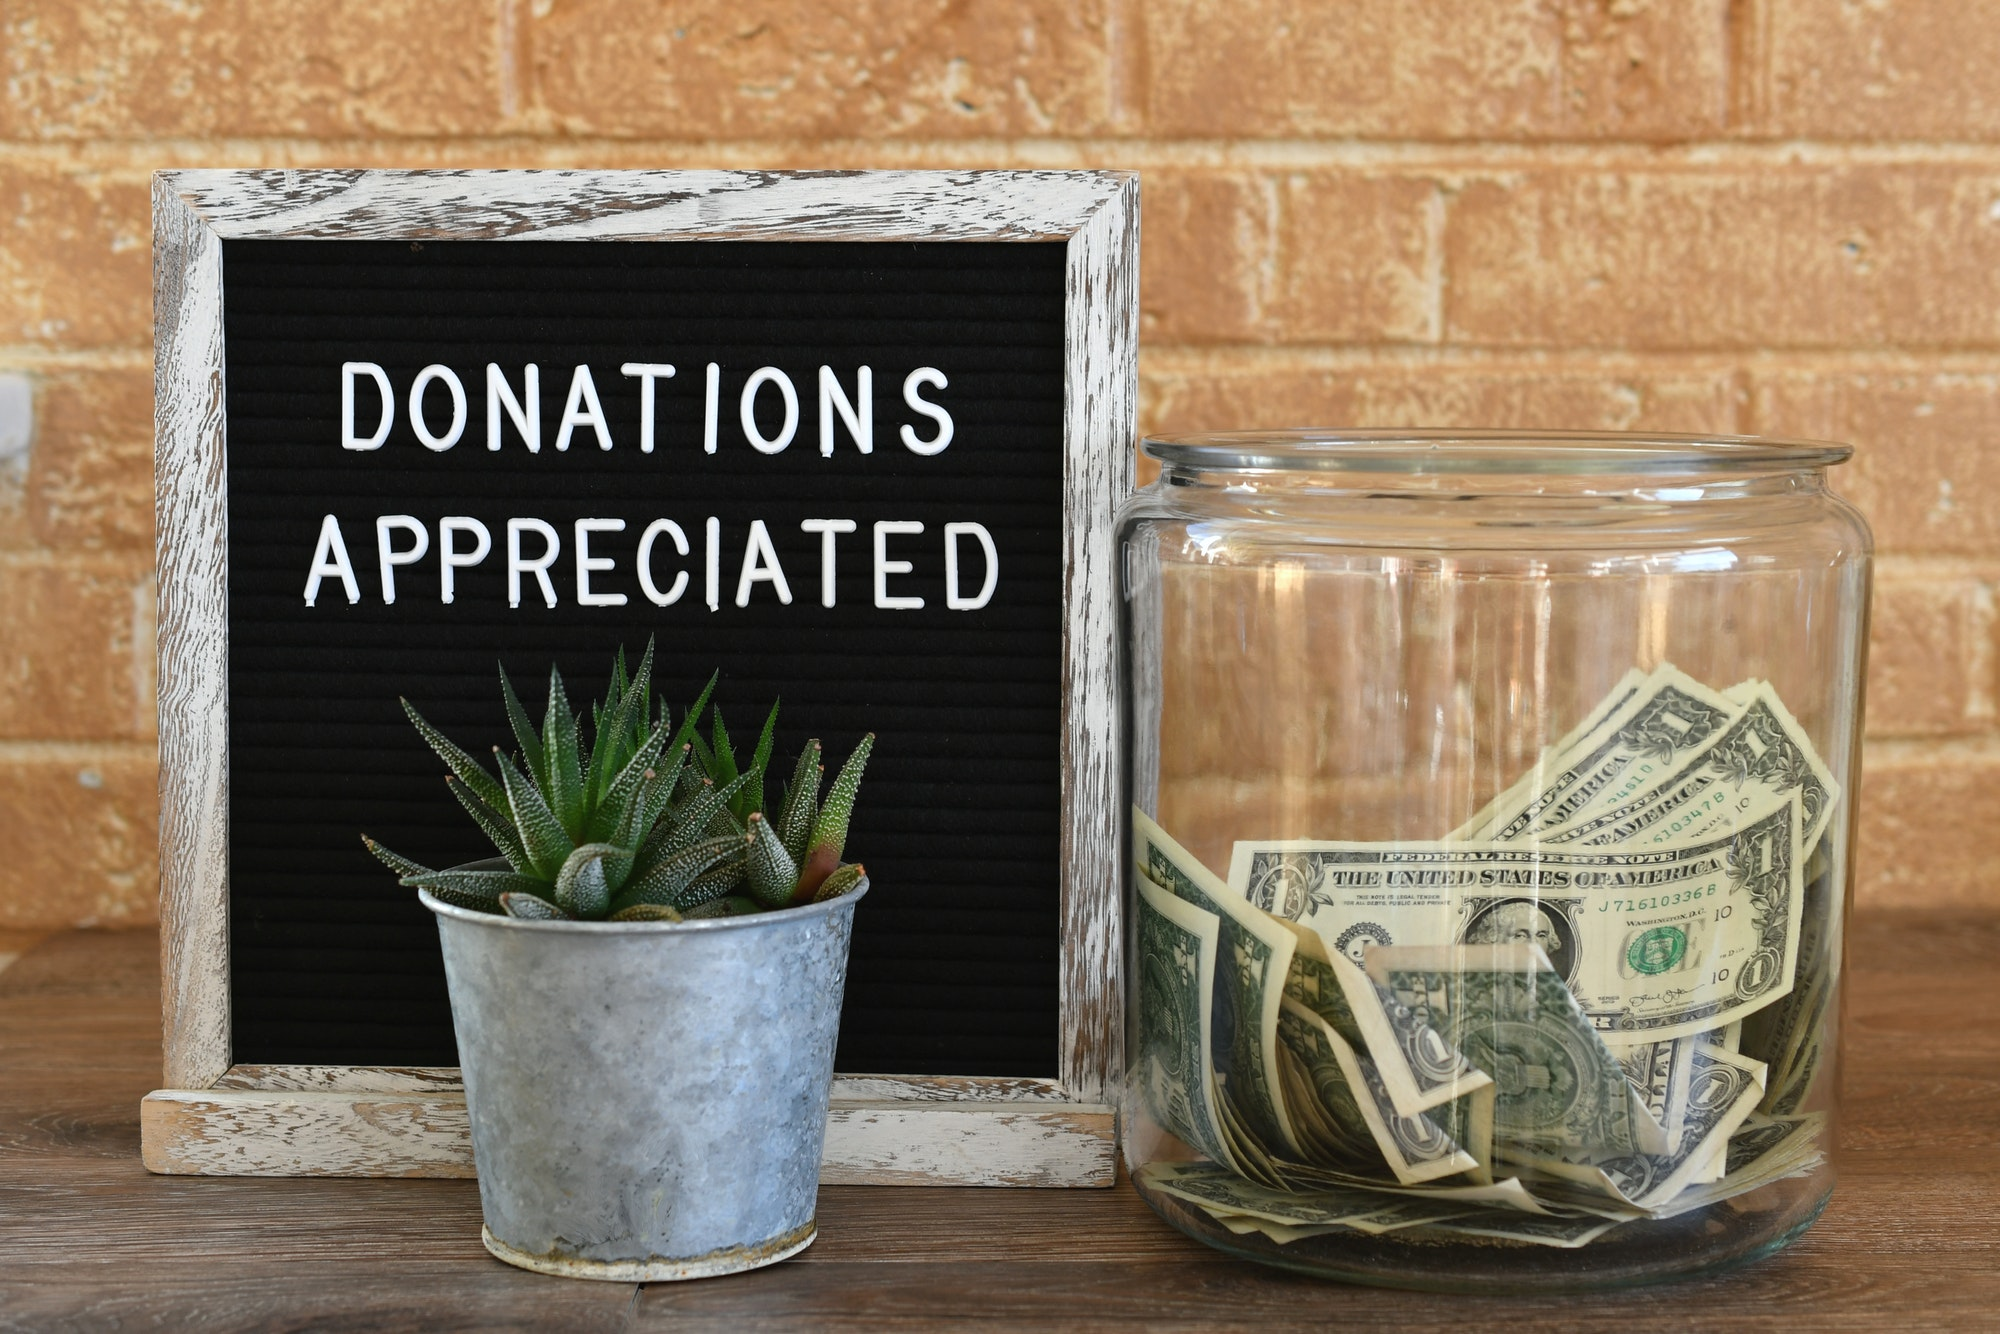 Jar Of Money Cash Donations Appreciated Sign Message Board, Contributions, Tips, Collection